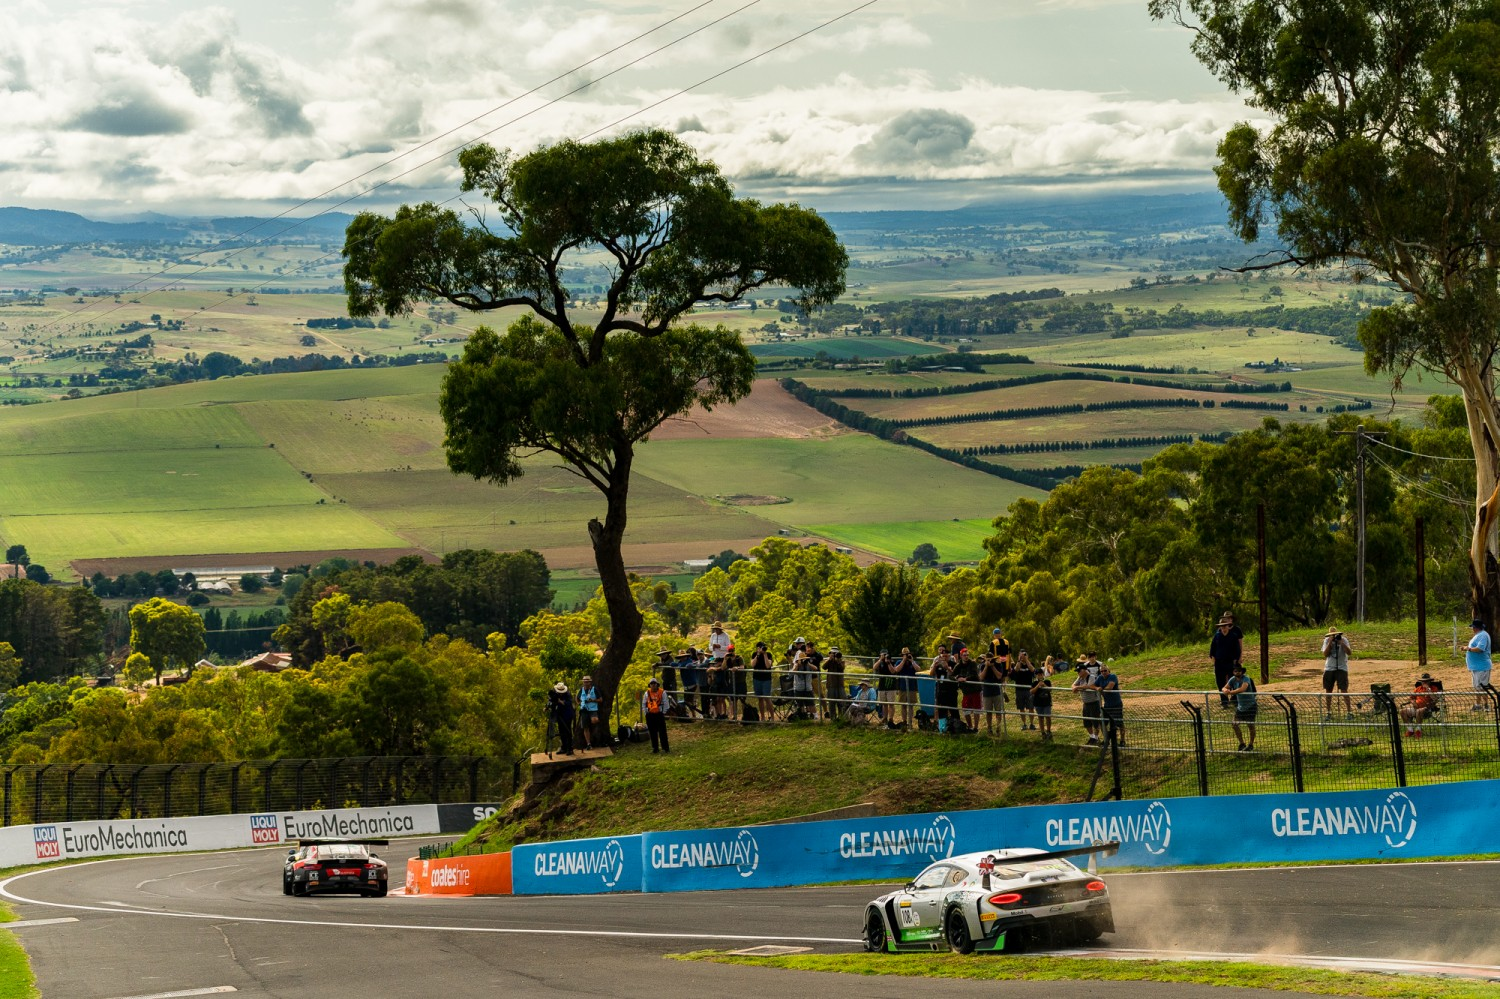 Key elements of Bathurst 12 Hour confirmed as 100 day countdown begins